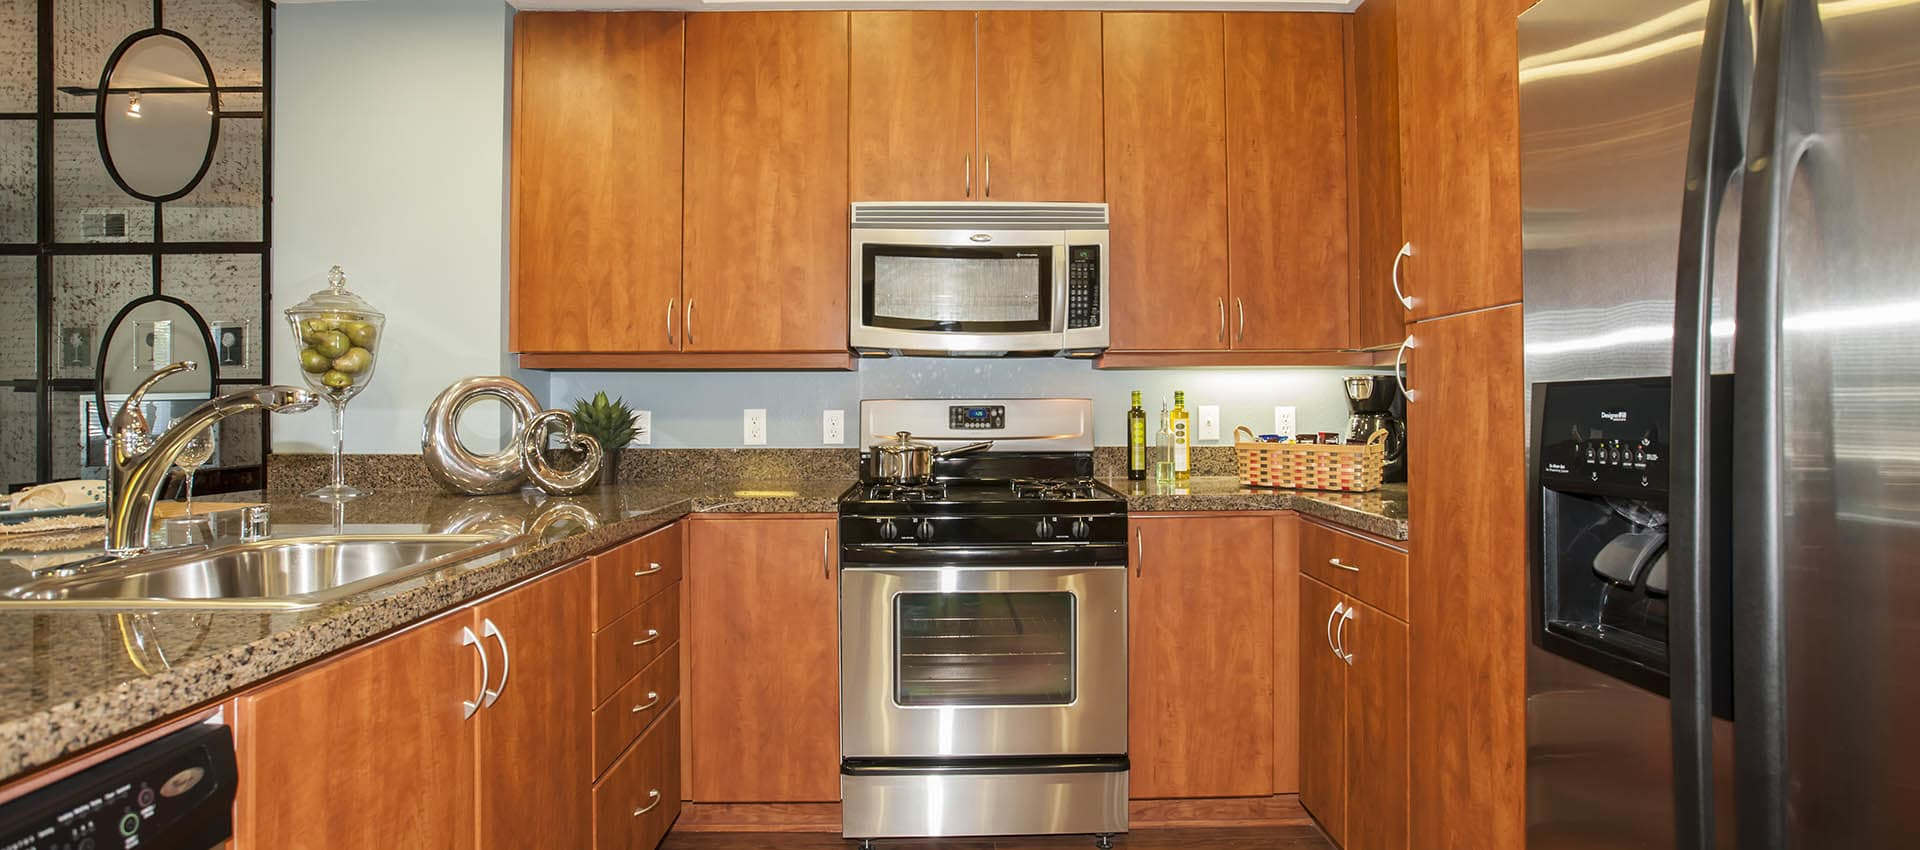 Luxury Kitchen With Custom Cabinets at Azure Apartment Homes in Petaluma, California